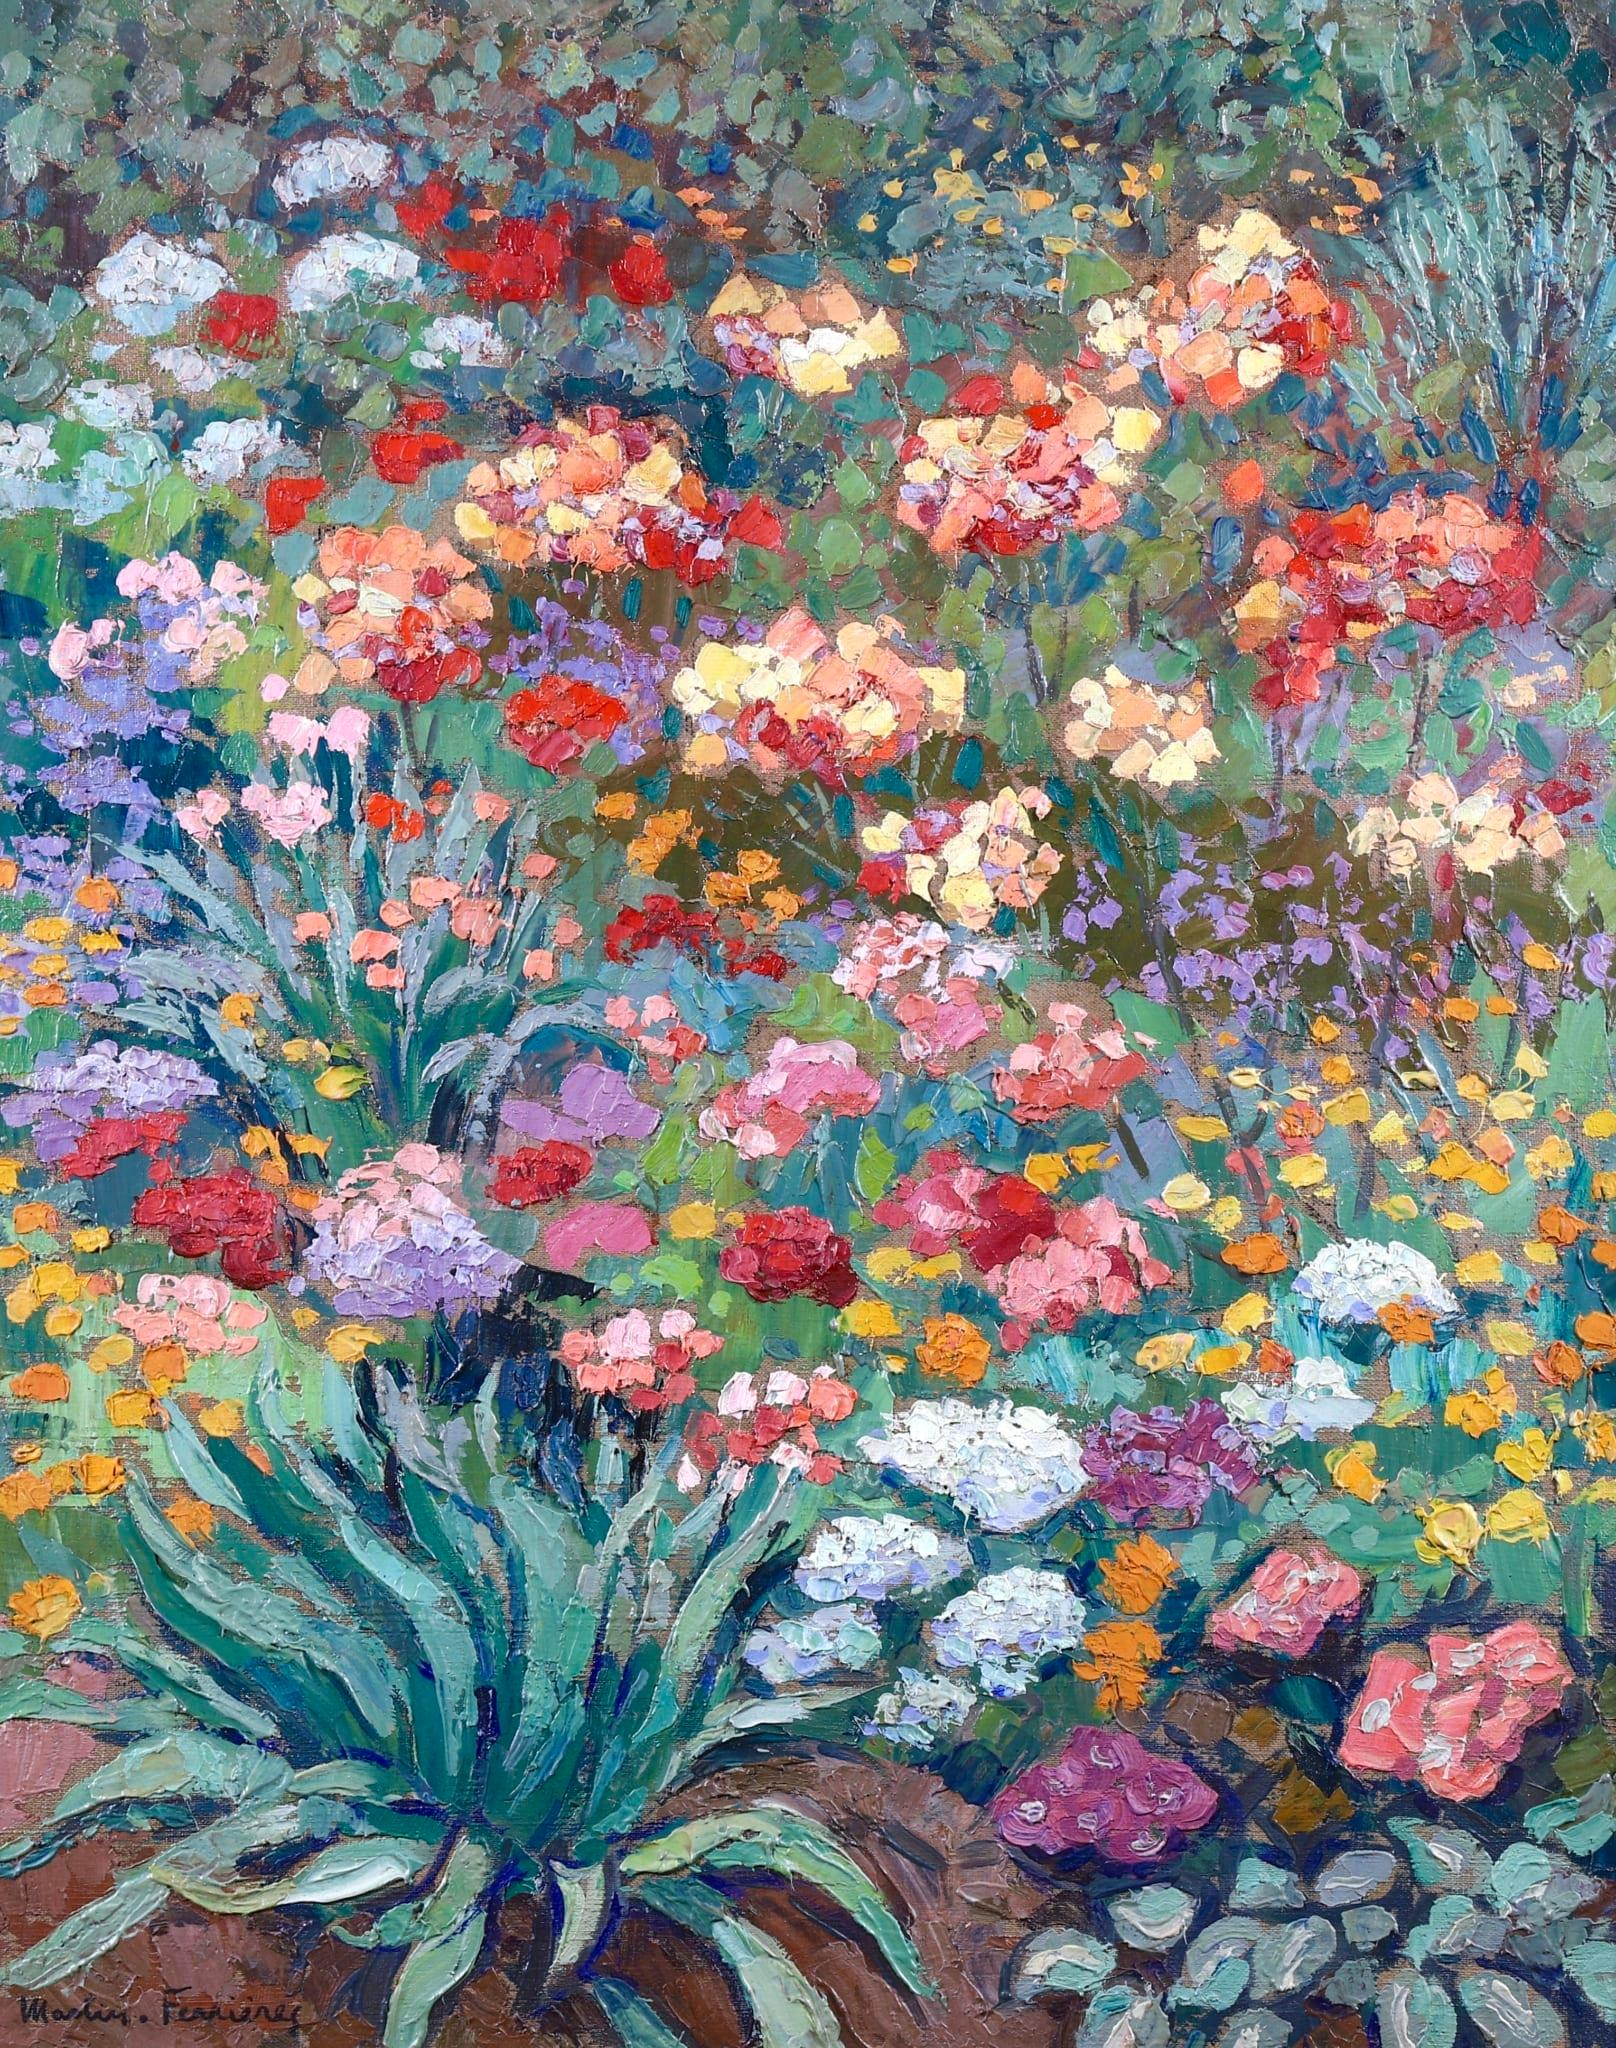 Flowers in Garden - Post Impressionist Oil, Landscape - Jacques Martin-Ferrieres